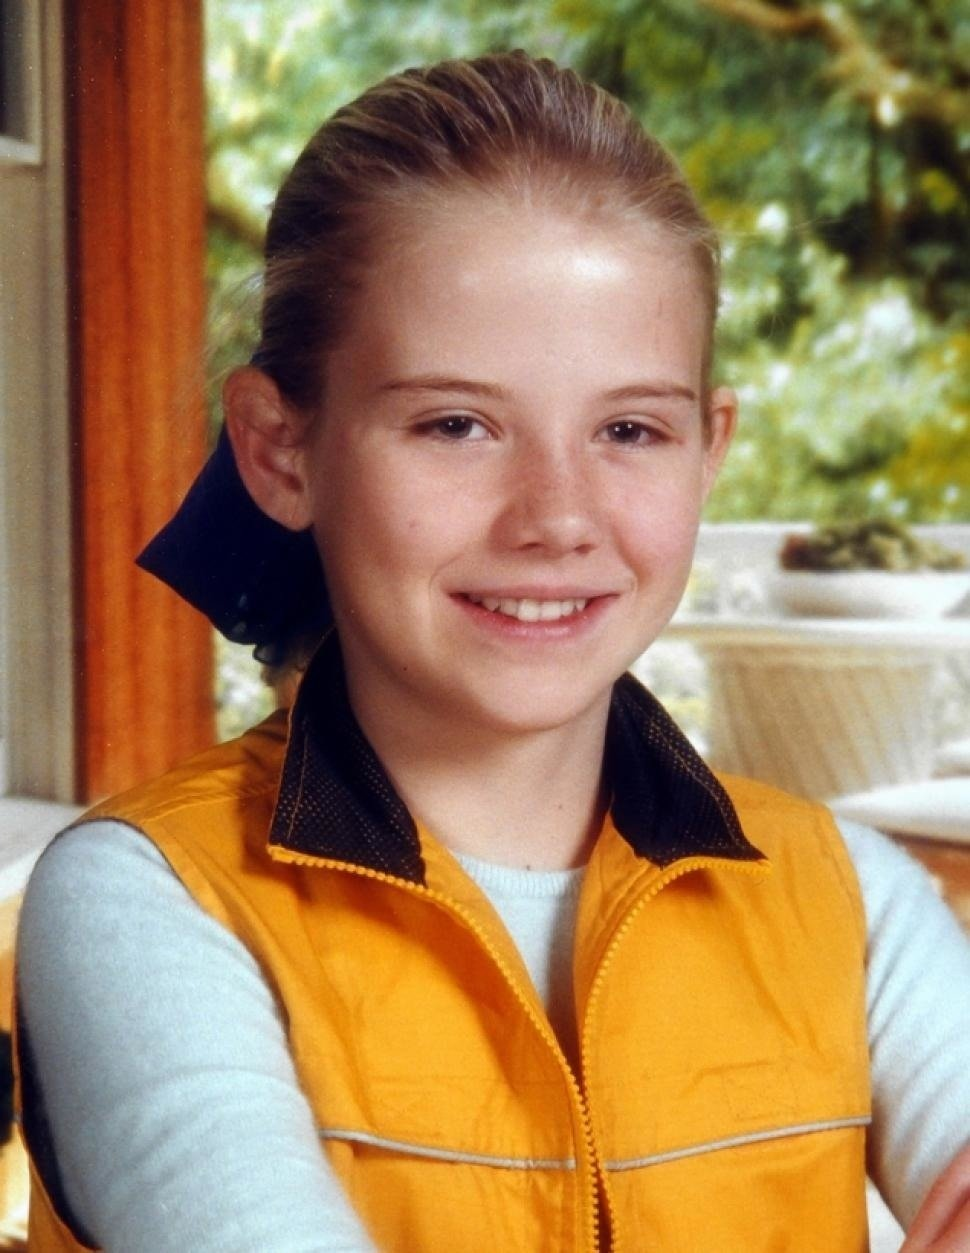 Elizabeth Smart is wearing t-shirt and yellow half jacket. She is looking at the camera with a smile on her face. She was kidnapped when she was just 14 at age.